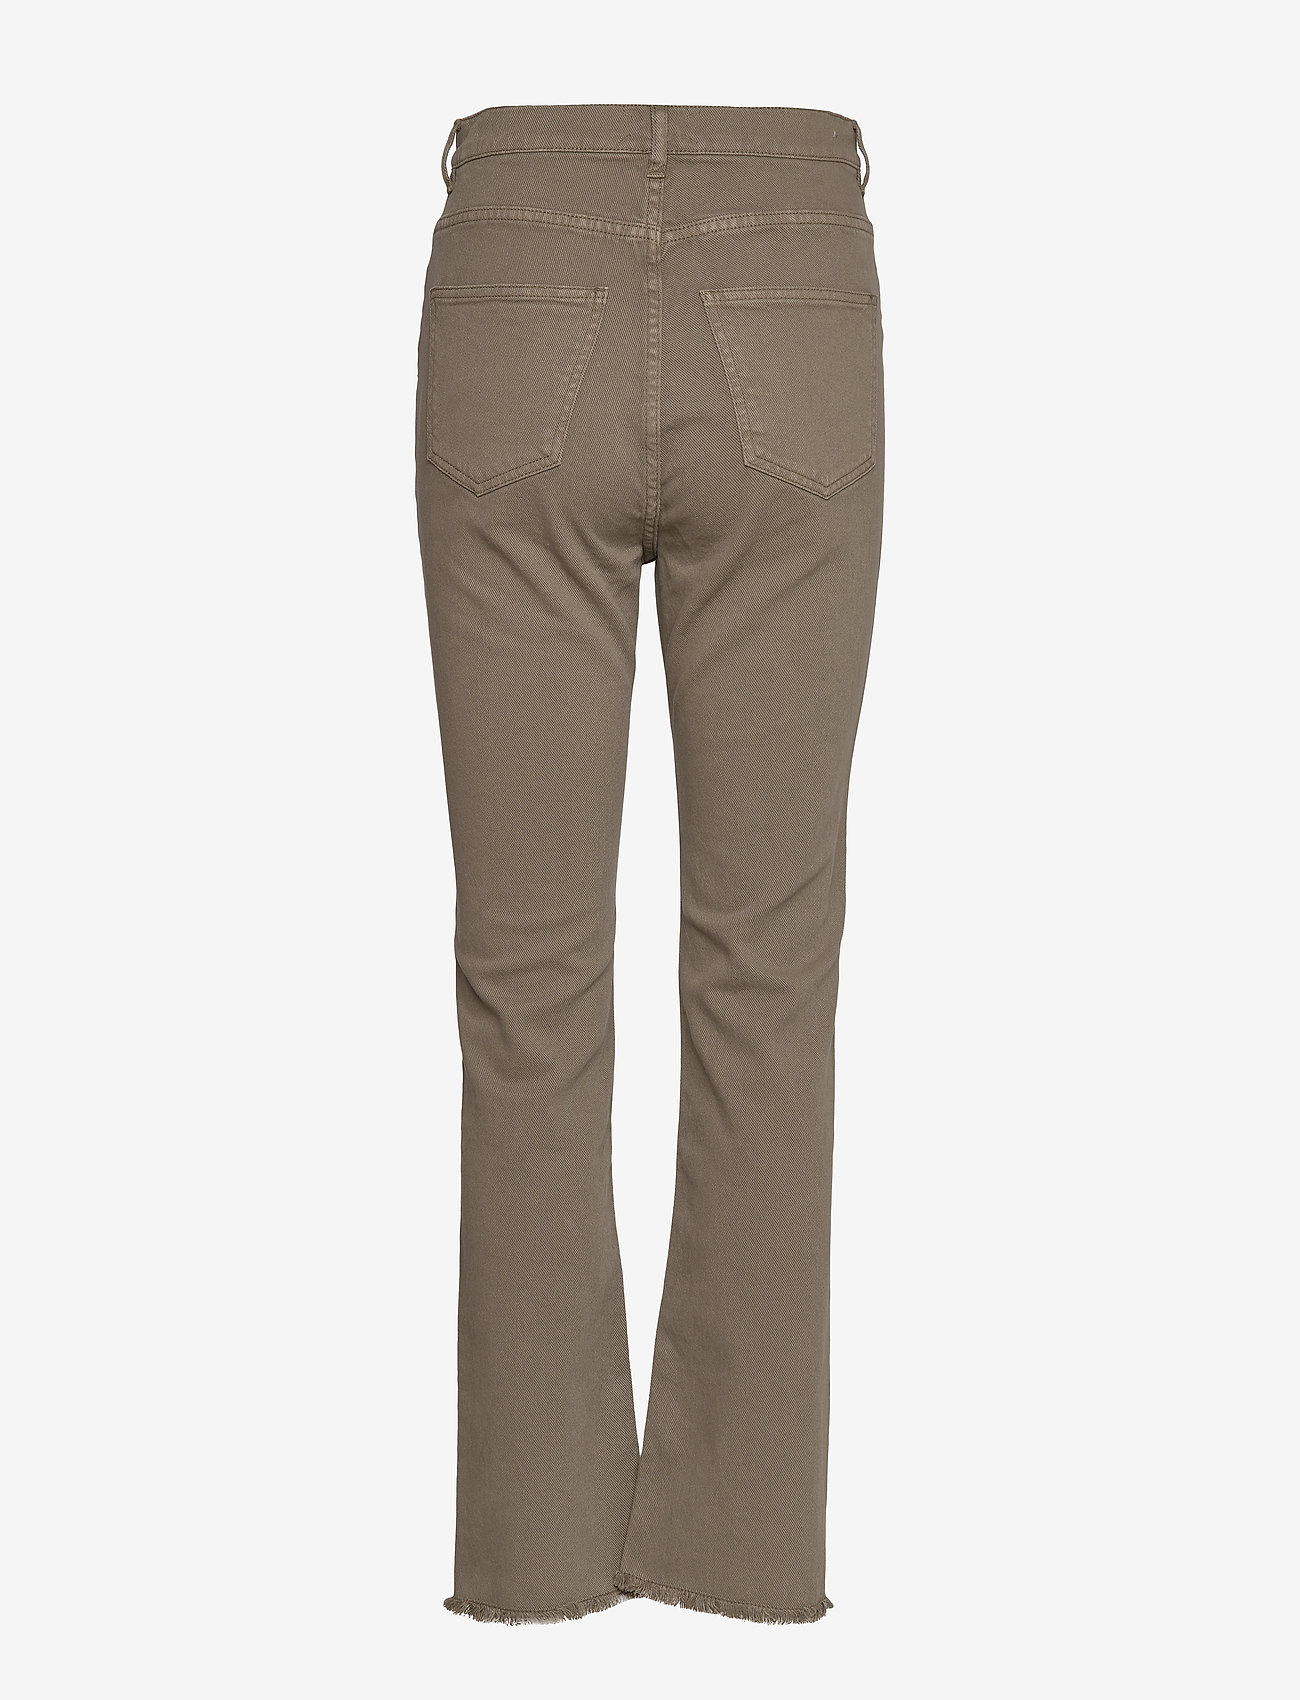 SAND - 0639 - Kathy Cropped - boot cut jeans - olive/khaki - 1